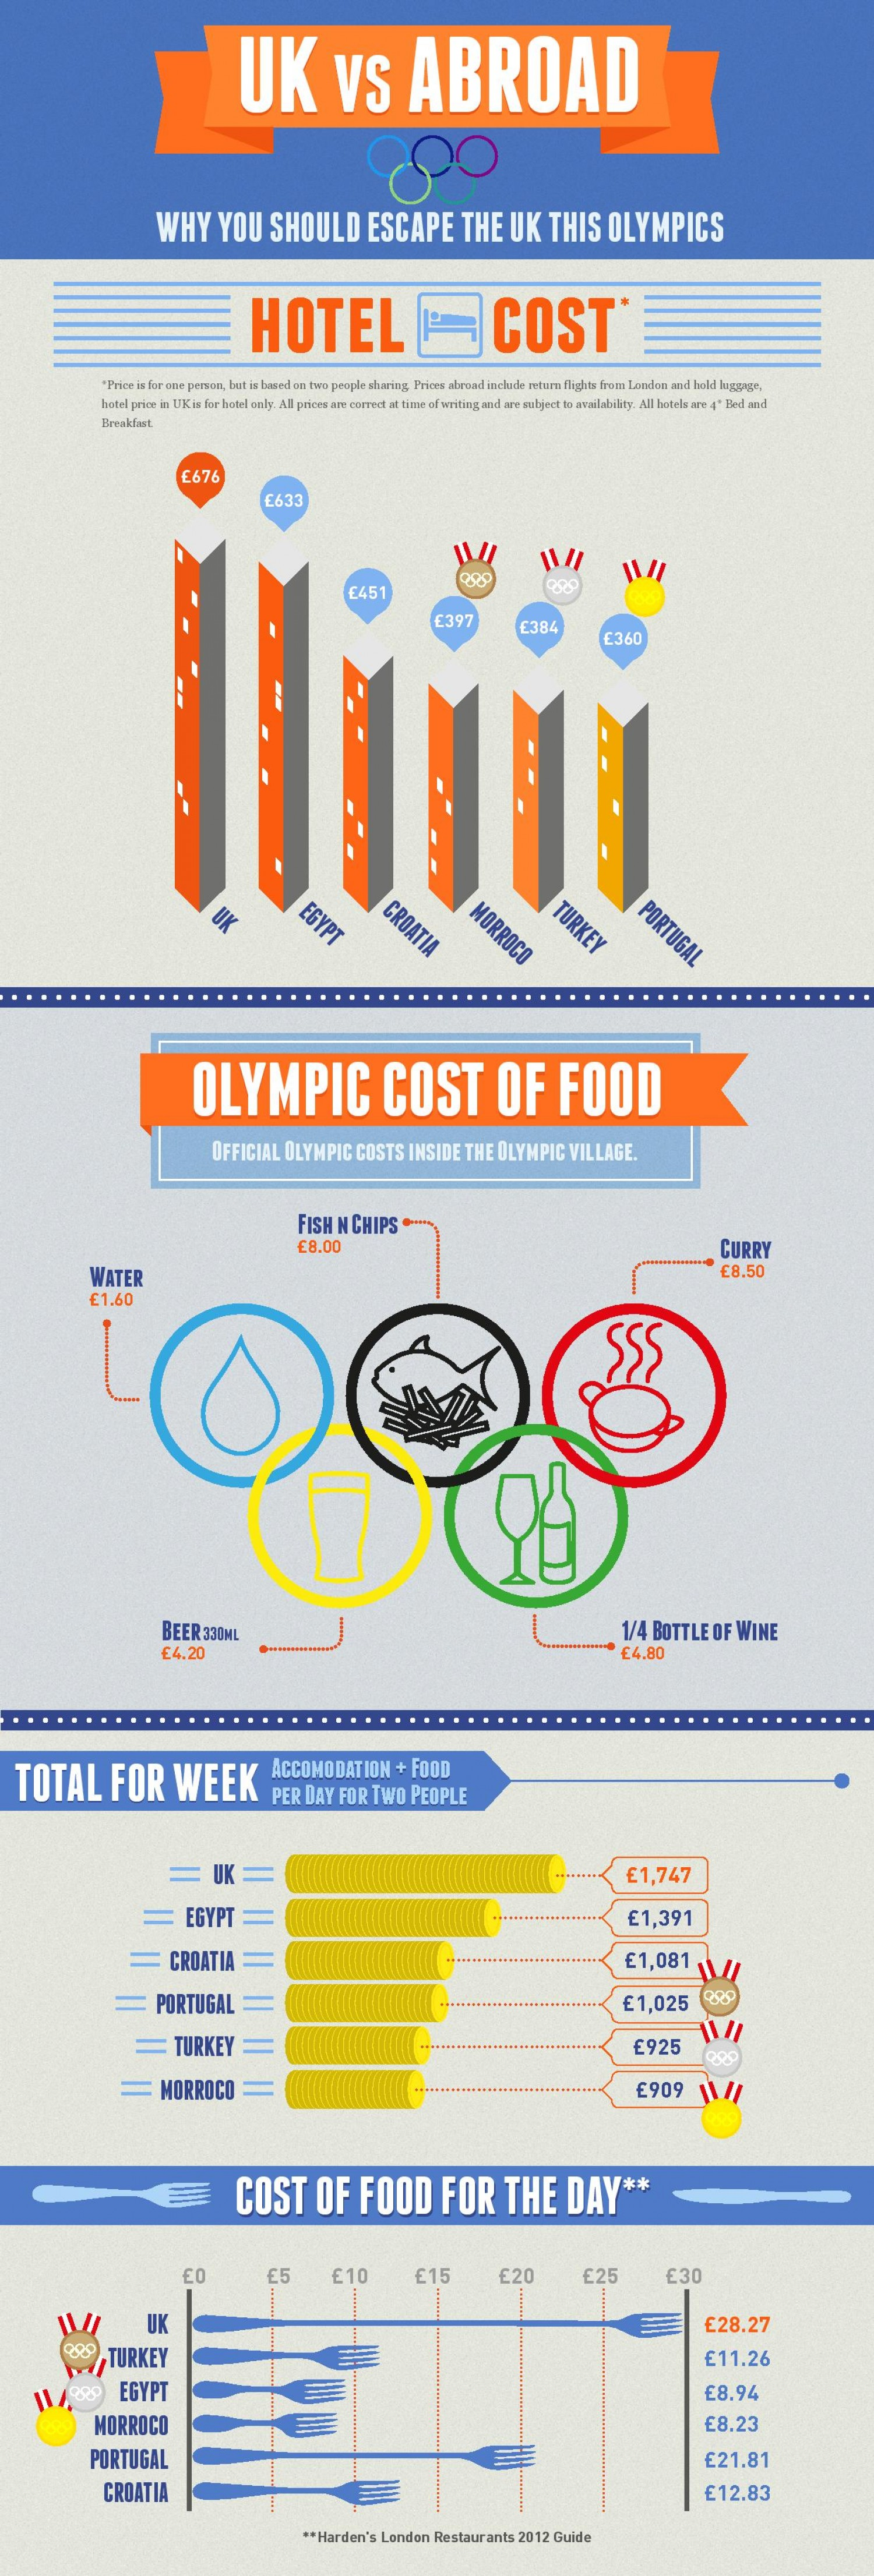 9. Why you should escape the UK this Olympics